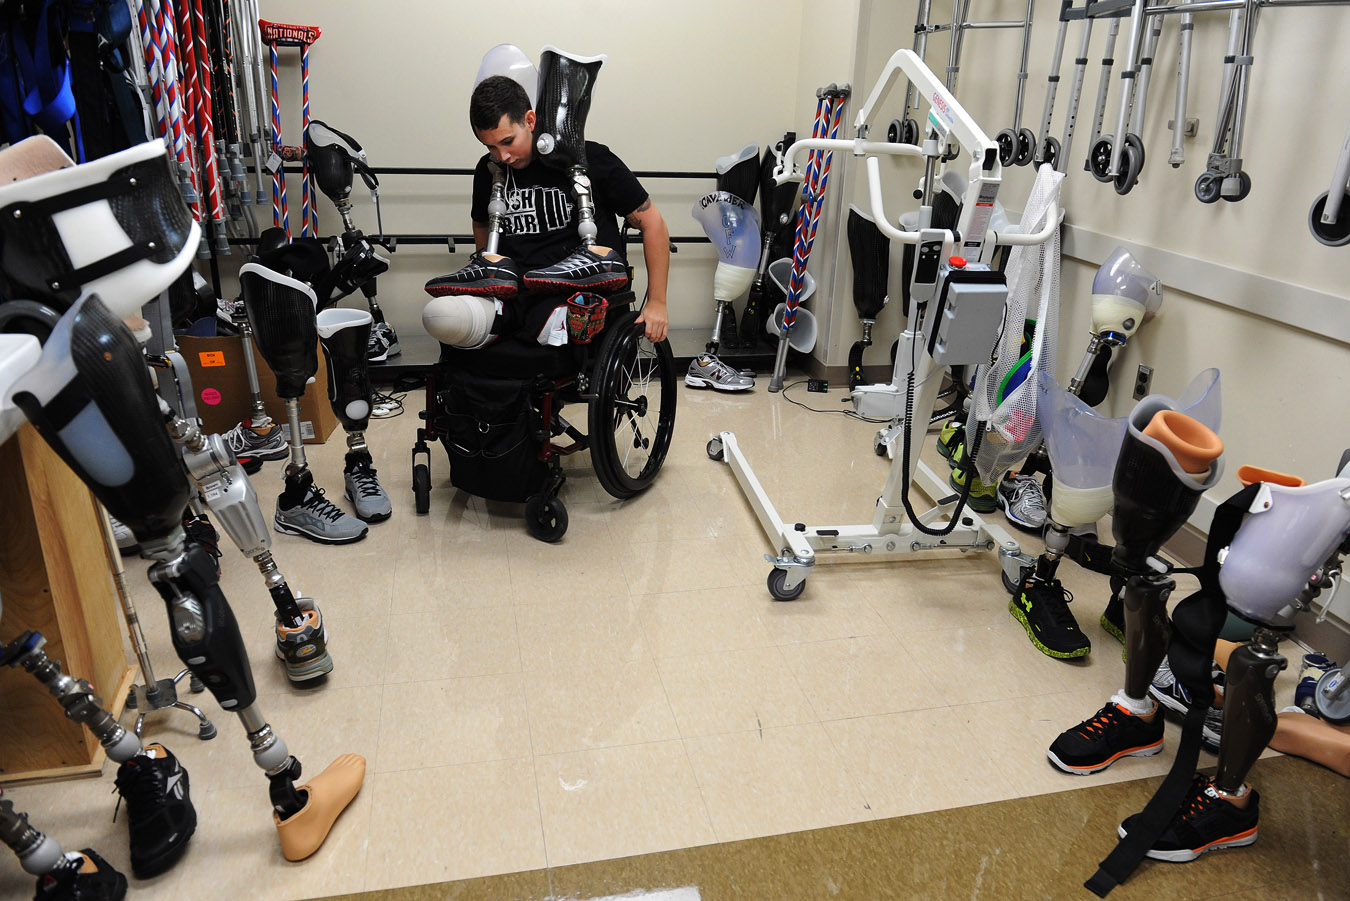 U.S. Army Staff Sgt. Sam Shockley prepares to work on his balancing and walking with prosthetic legs as he rehabs on Friday May 09, 2014 in Bethesda, MD.  Shockley lost his legs and sustained other injuries while serving in Afghanistan.  (Photo by Matt McClain/ The Washington Post)